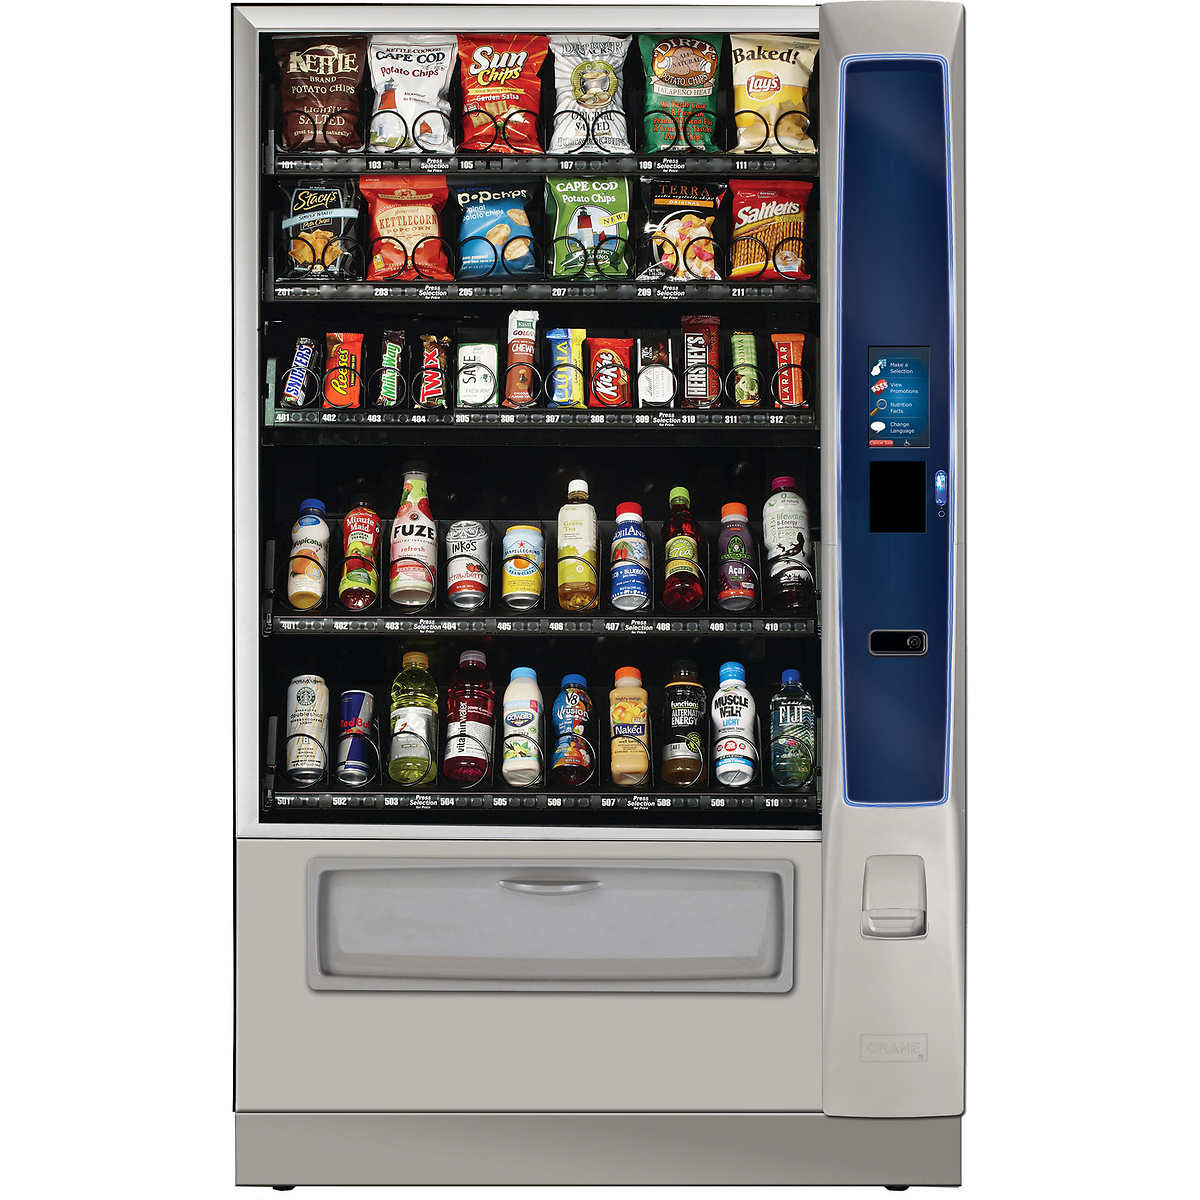 Food vending manchine